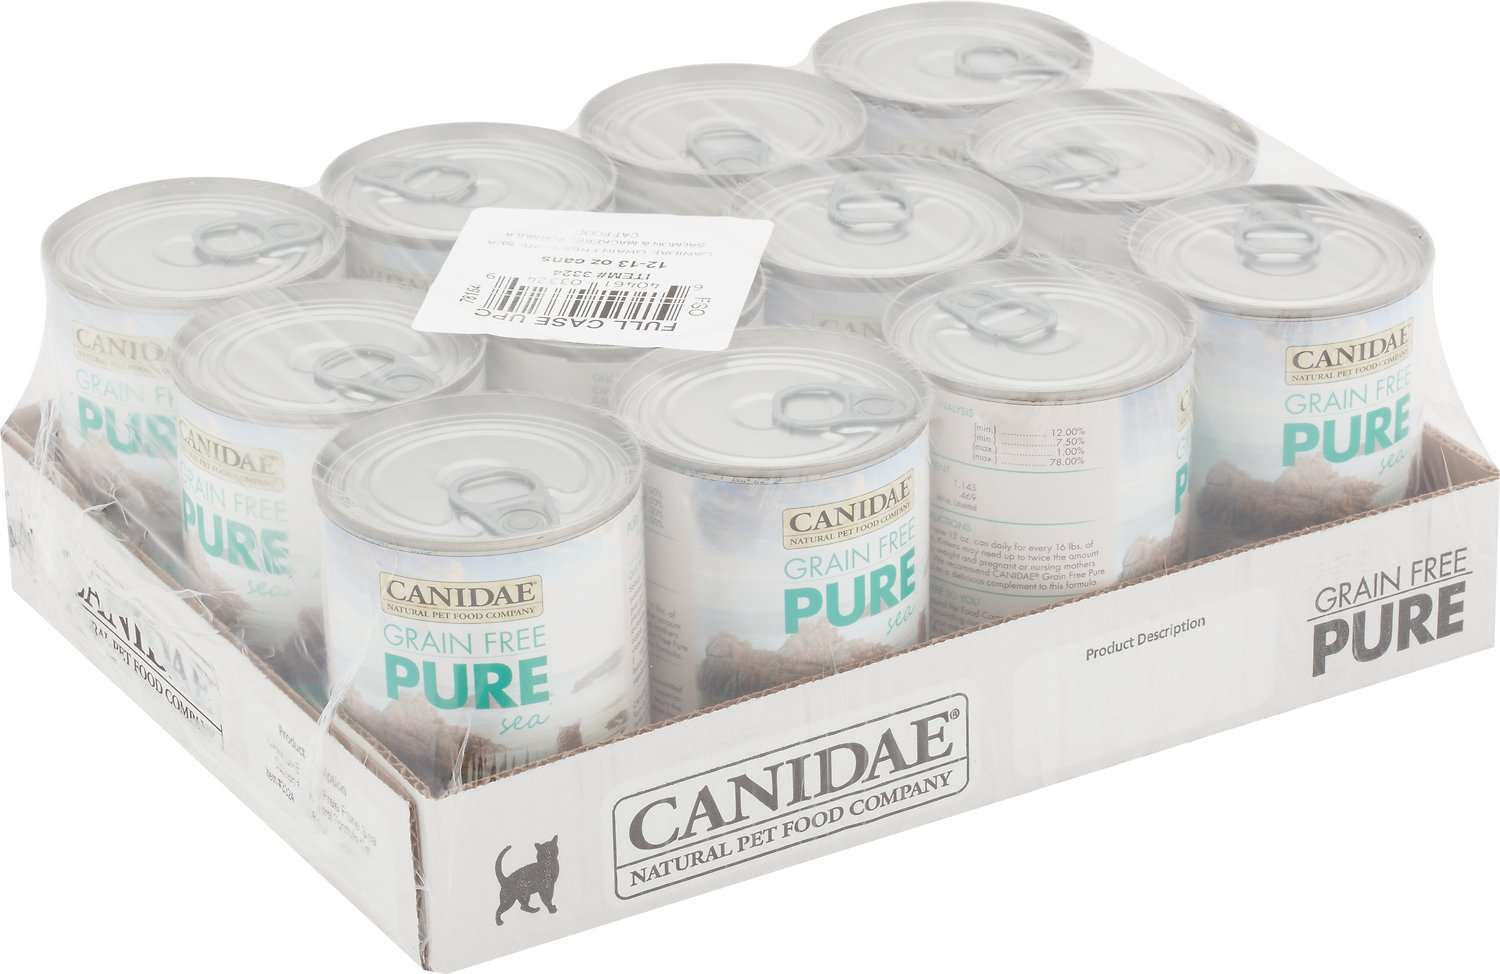 Canidae Pure Sea Cat Food Reviews